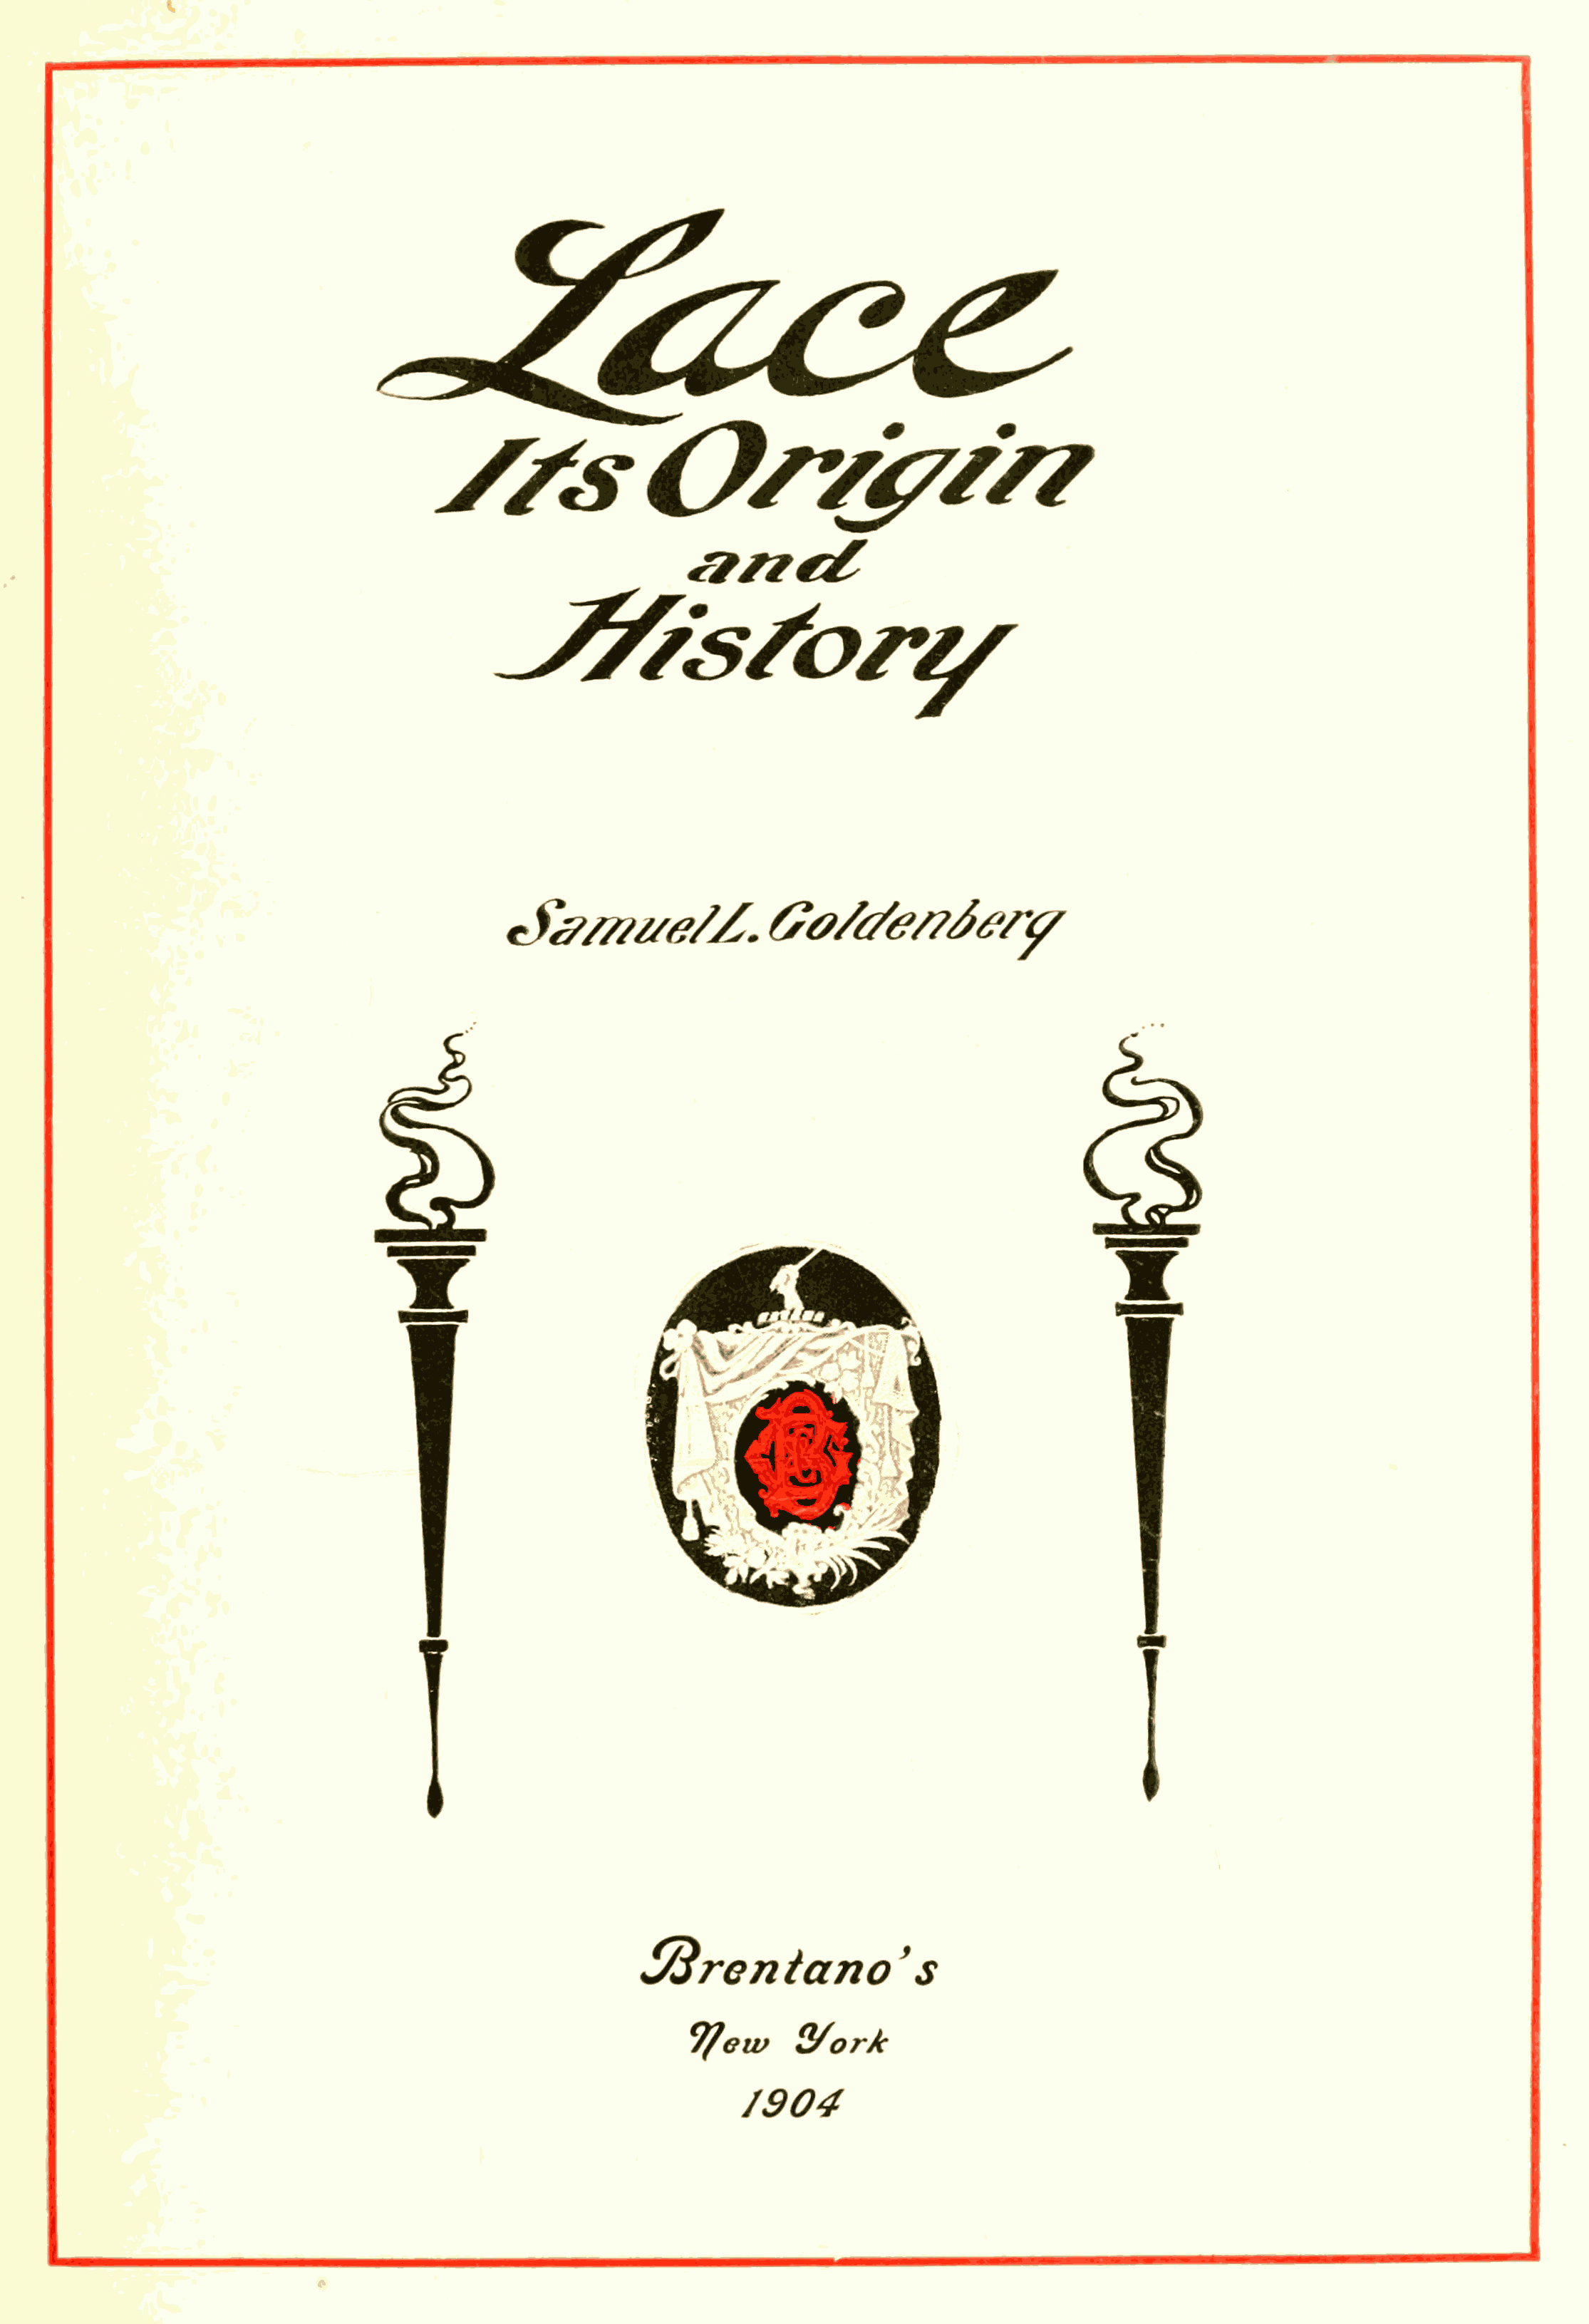 Lace Its Origin and History by Samuel L Goldenberg 1904